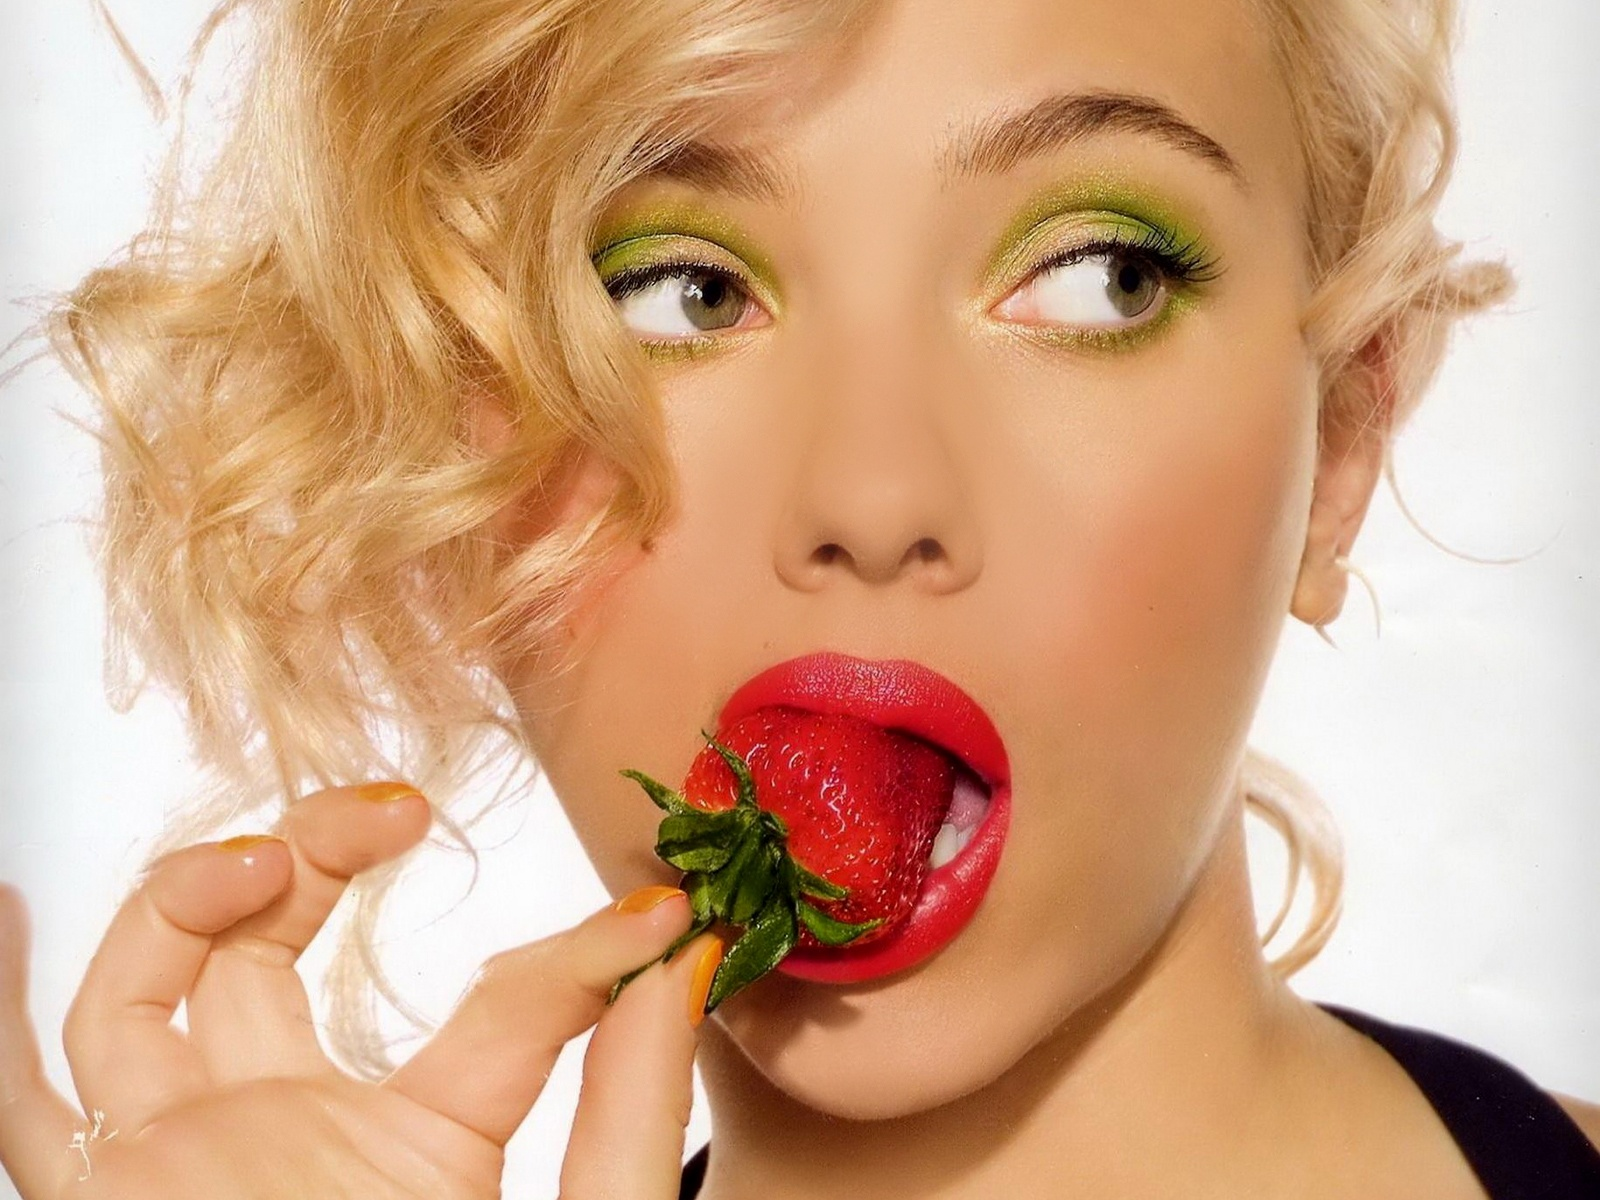 scarlett johansson hot eating straw berry